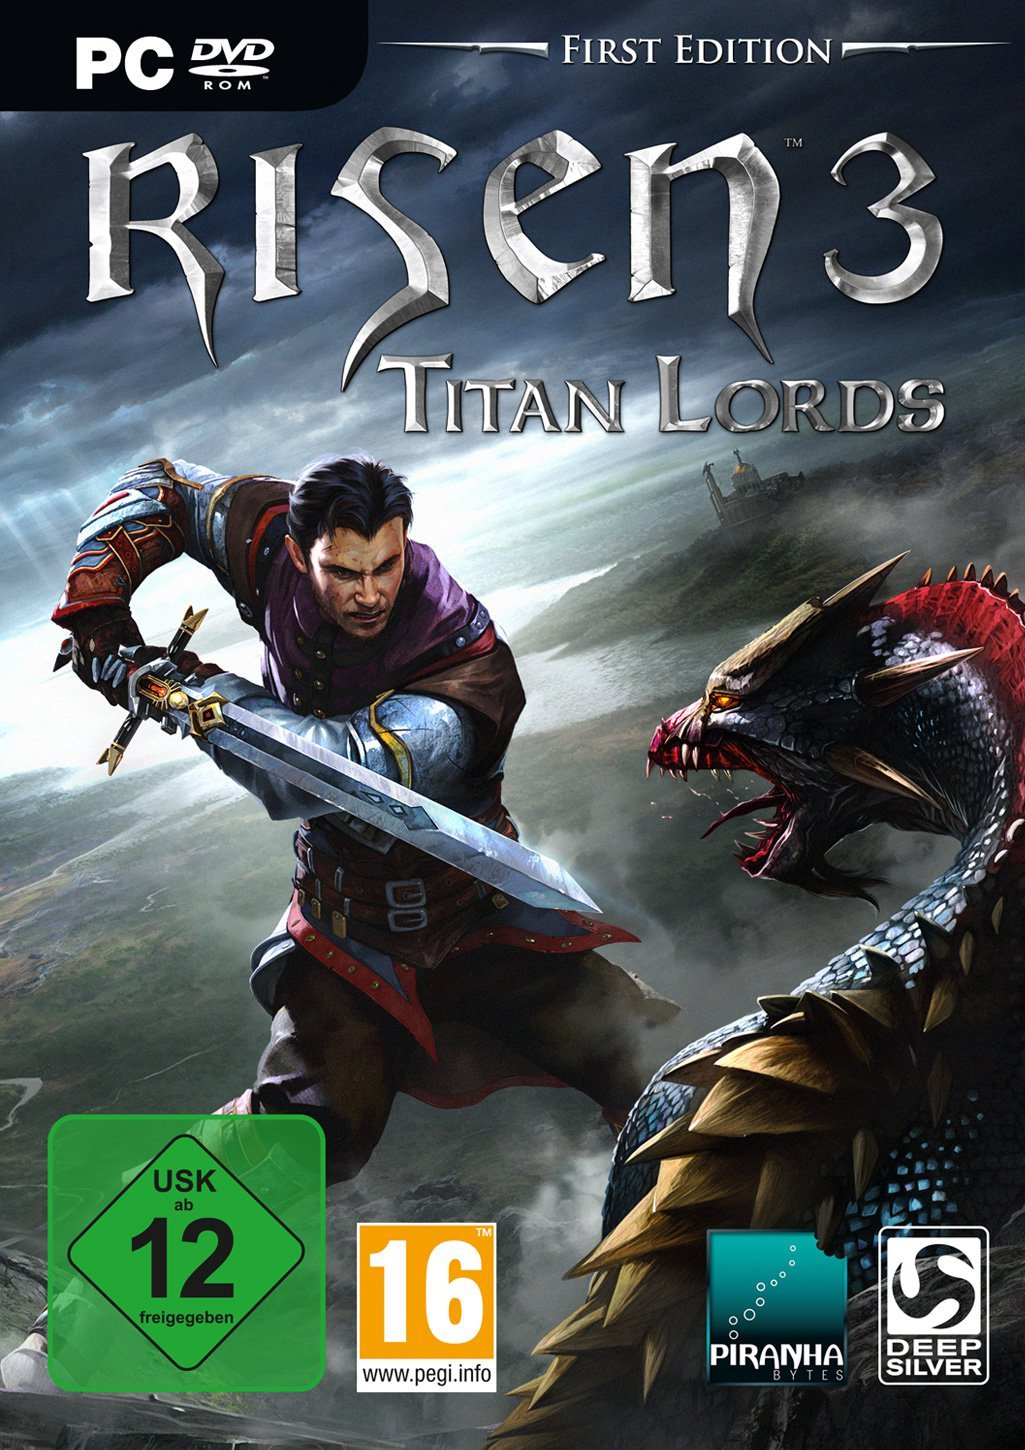 risen 3 pc dvd.jpg